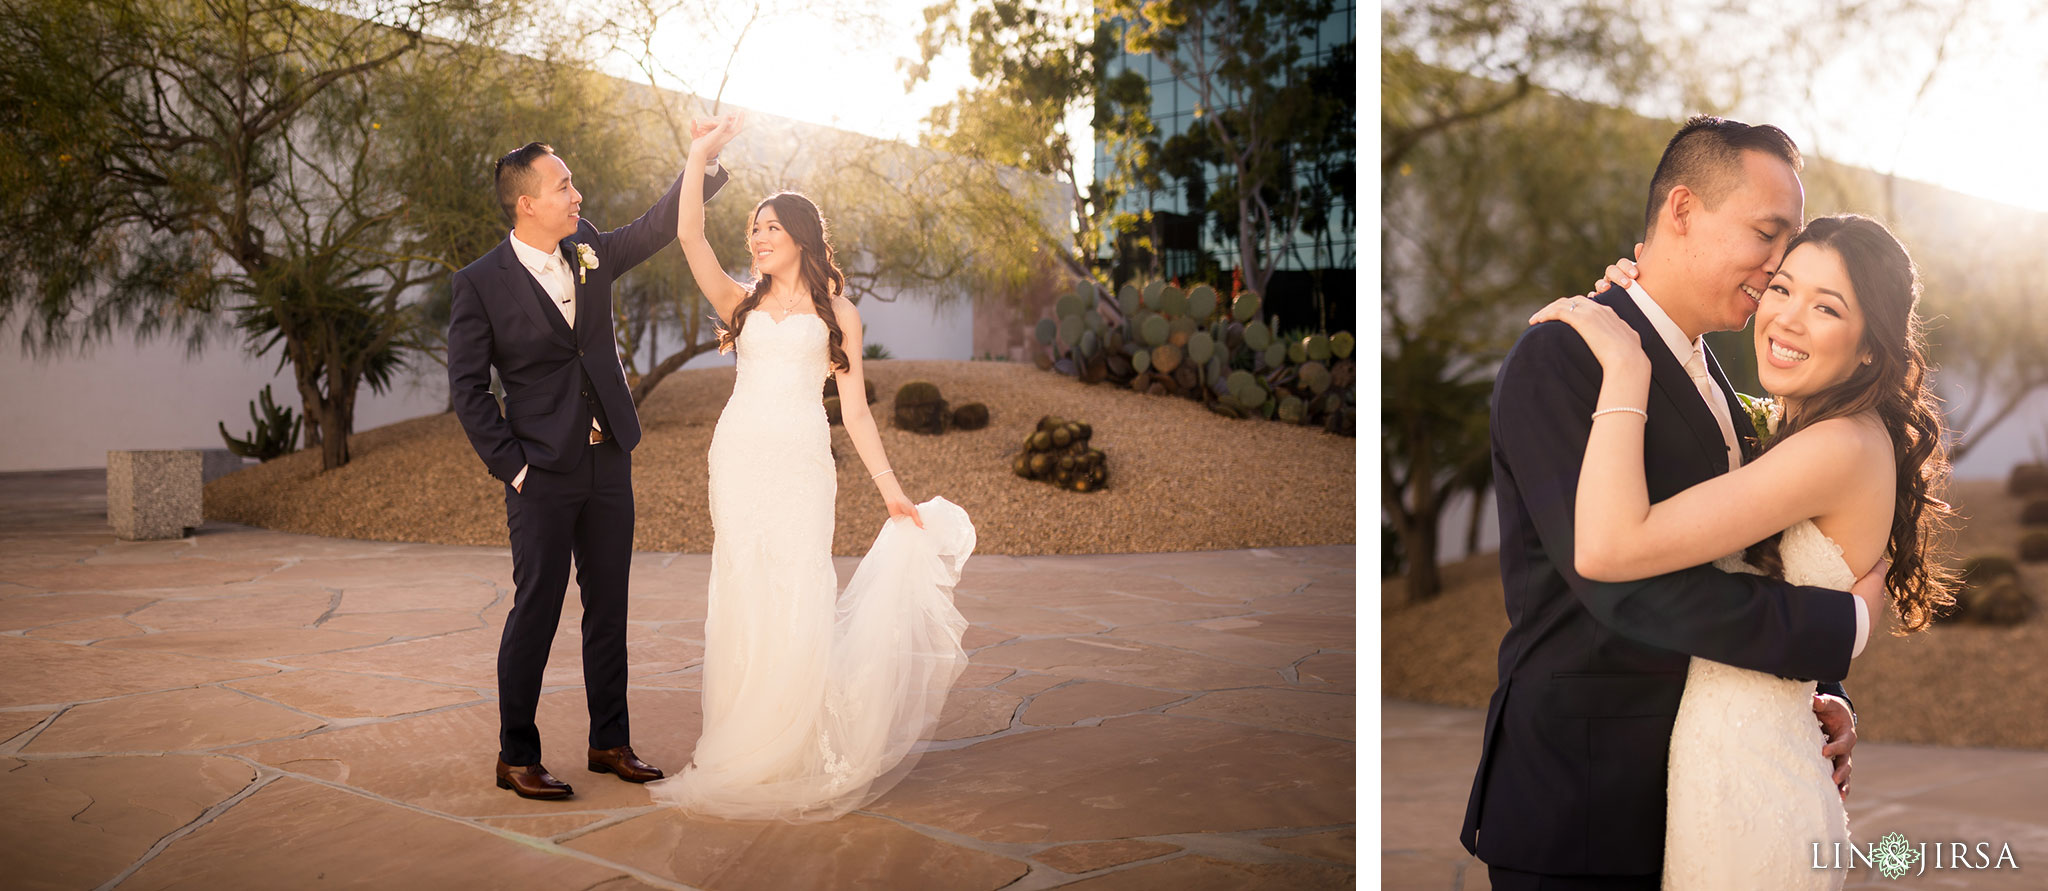 20 hilton costa mesa bride groom wedding photography